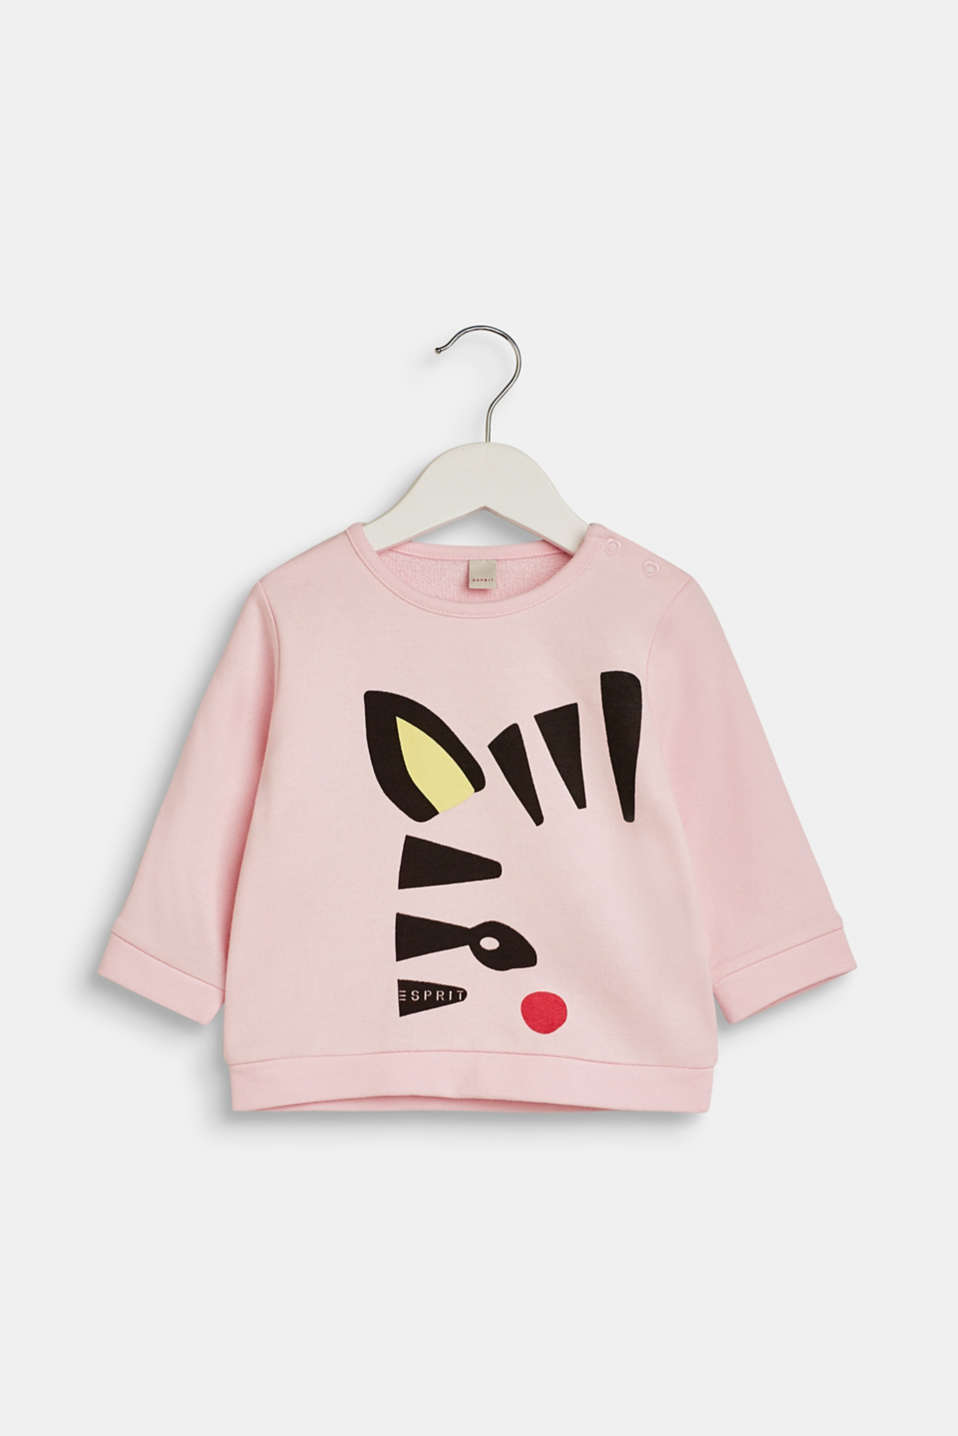 Esprit - Sweatshirt with front print, 100% cotton